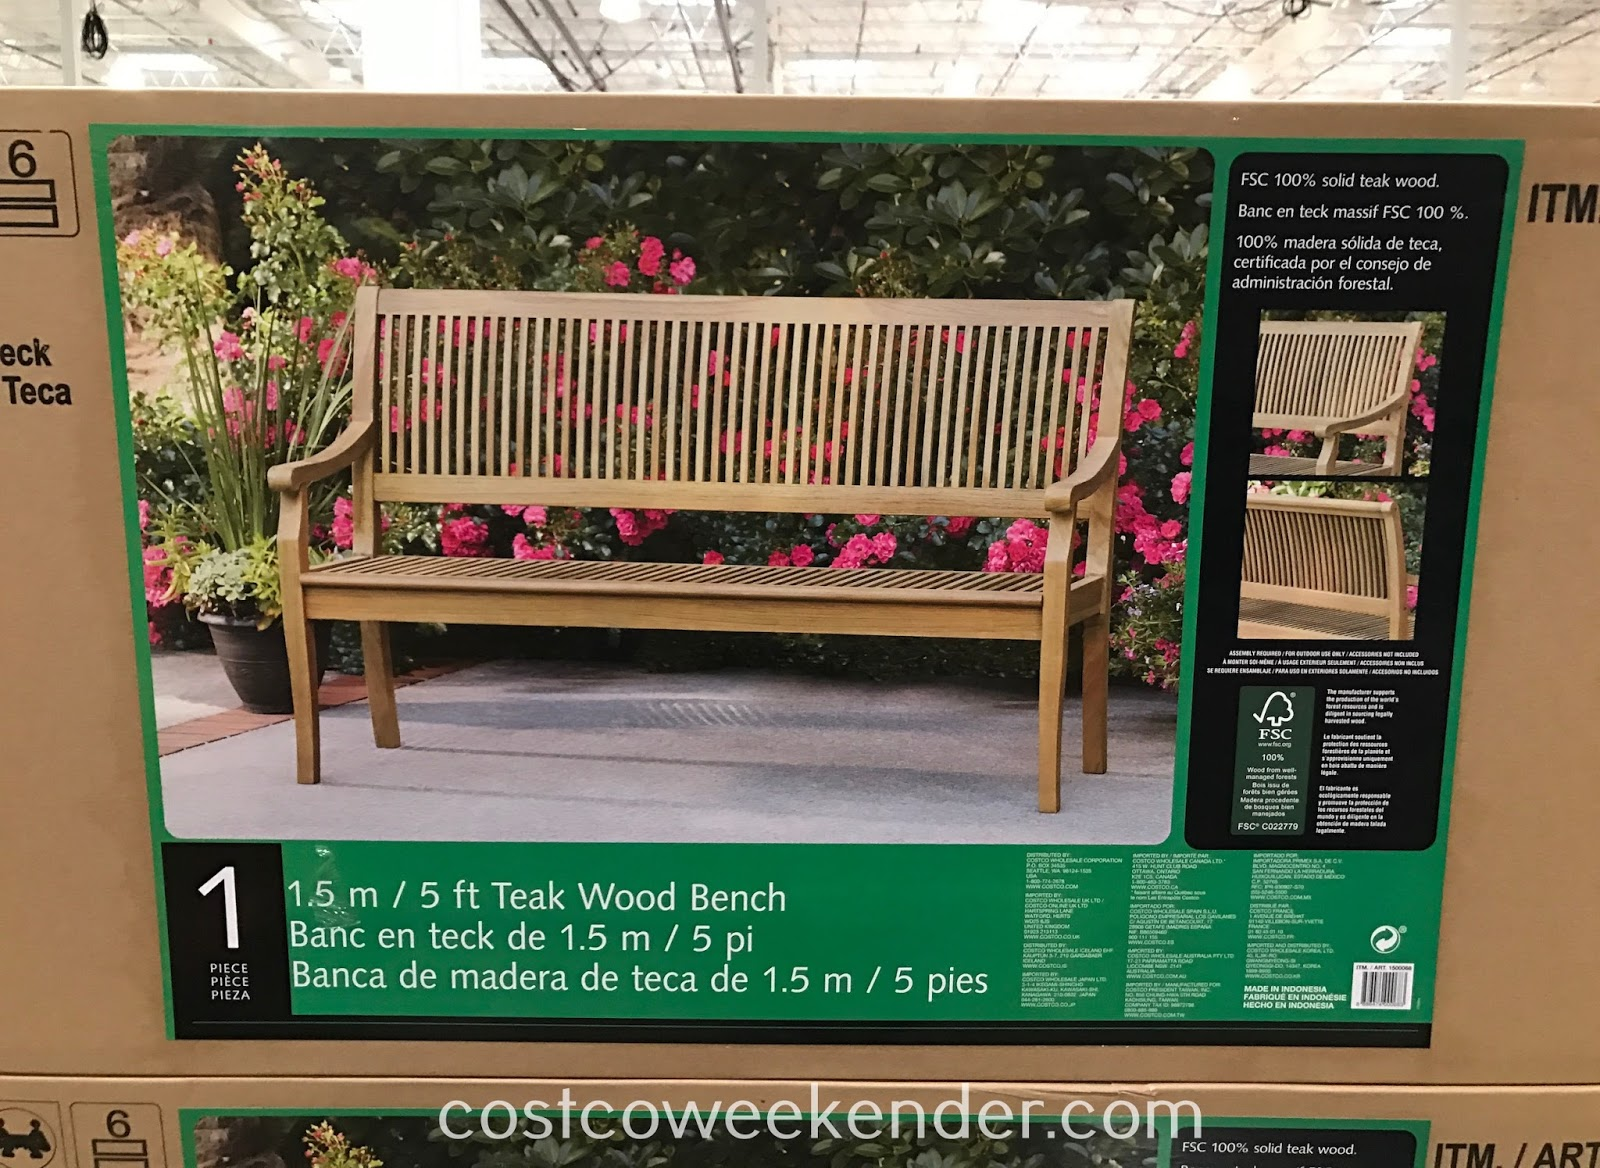 Costco 1500068 - 5-ft Teak Wood Bench: great for relaxing in a backyard or patio